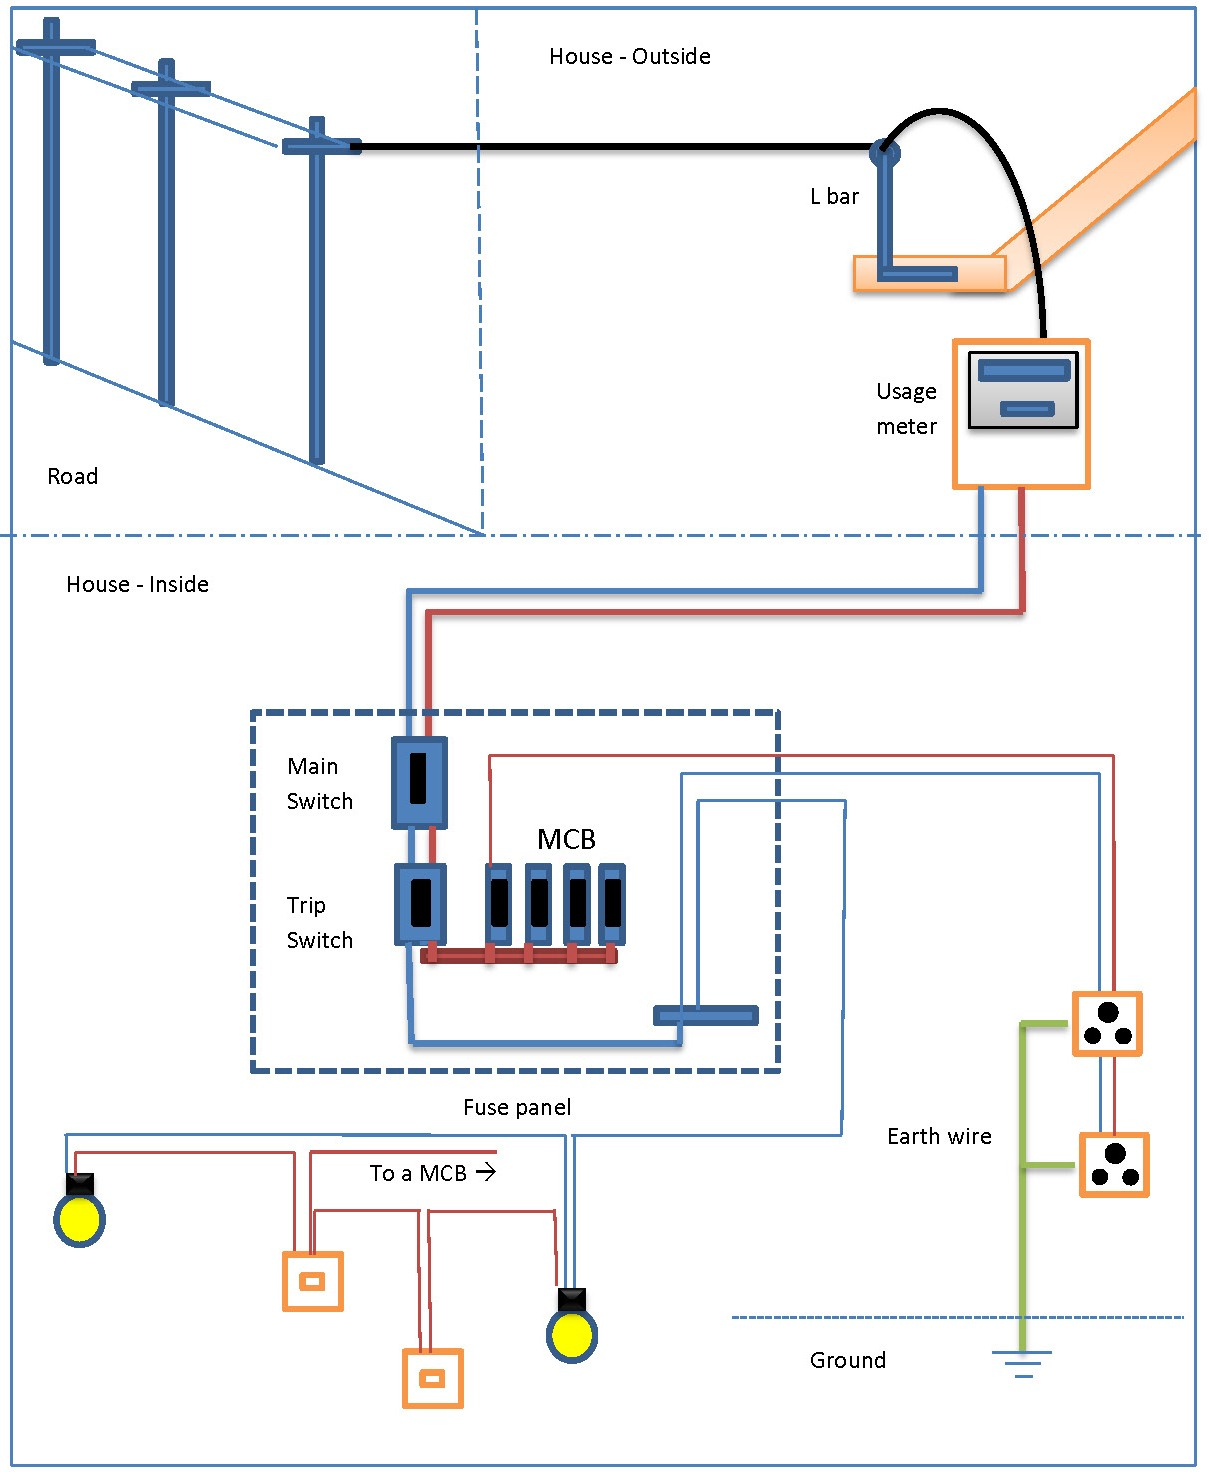 Senasums blog house wiring diagram sri lanka house wiring diagram sri lanka pooptronica